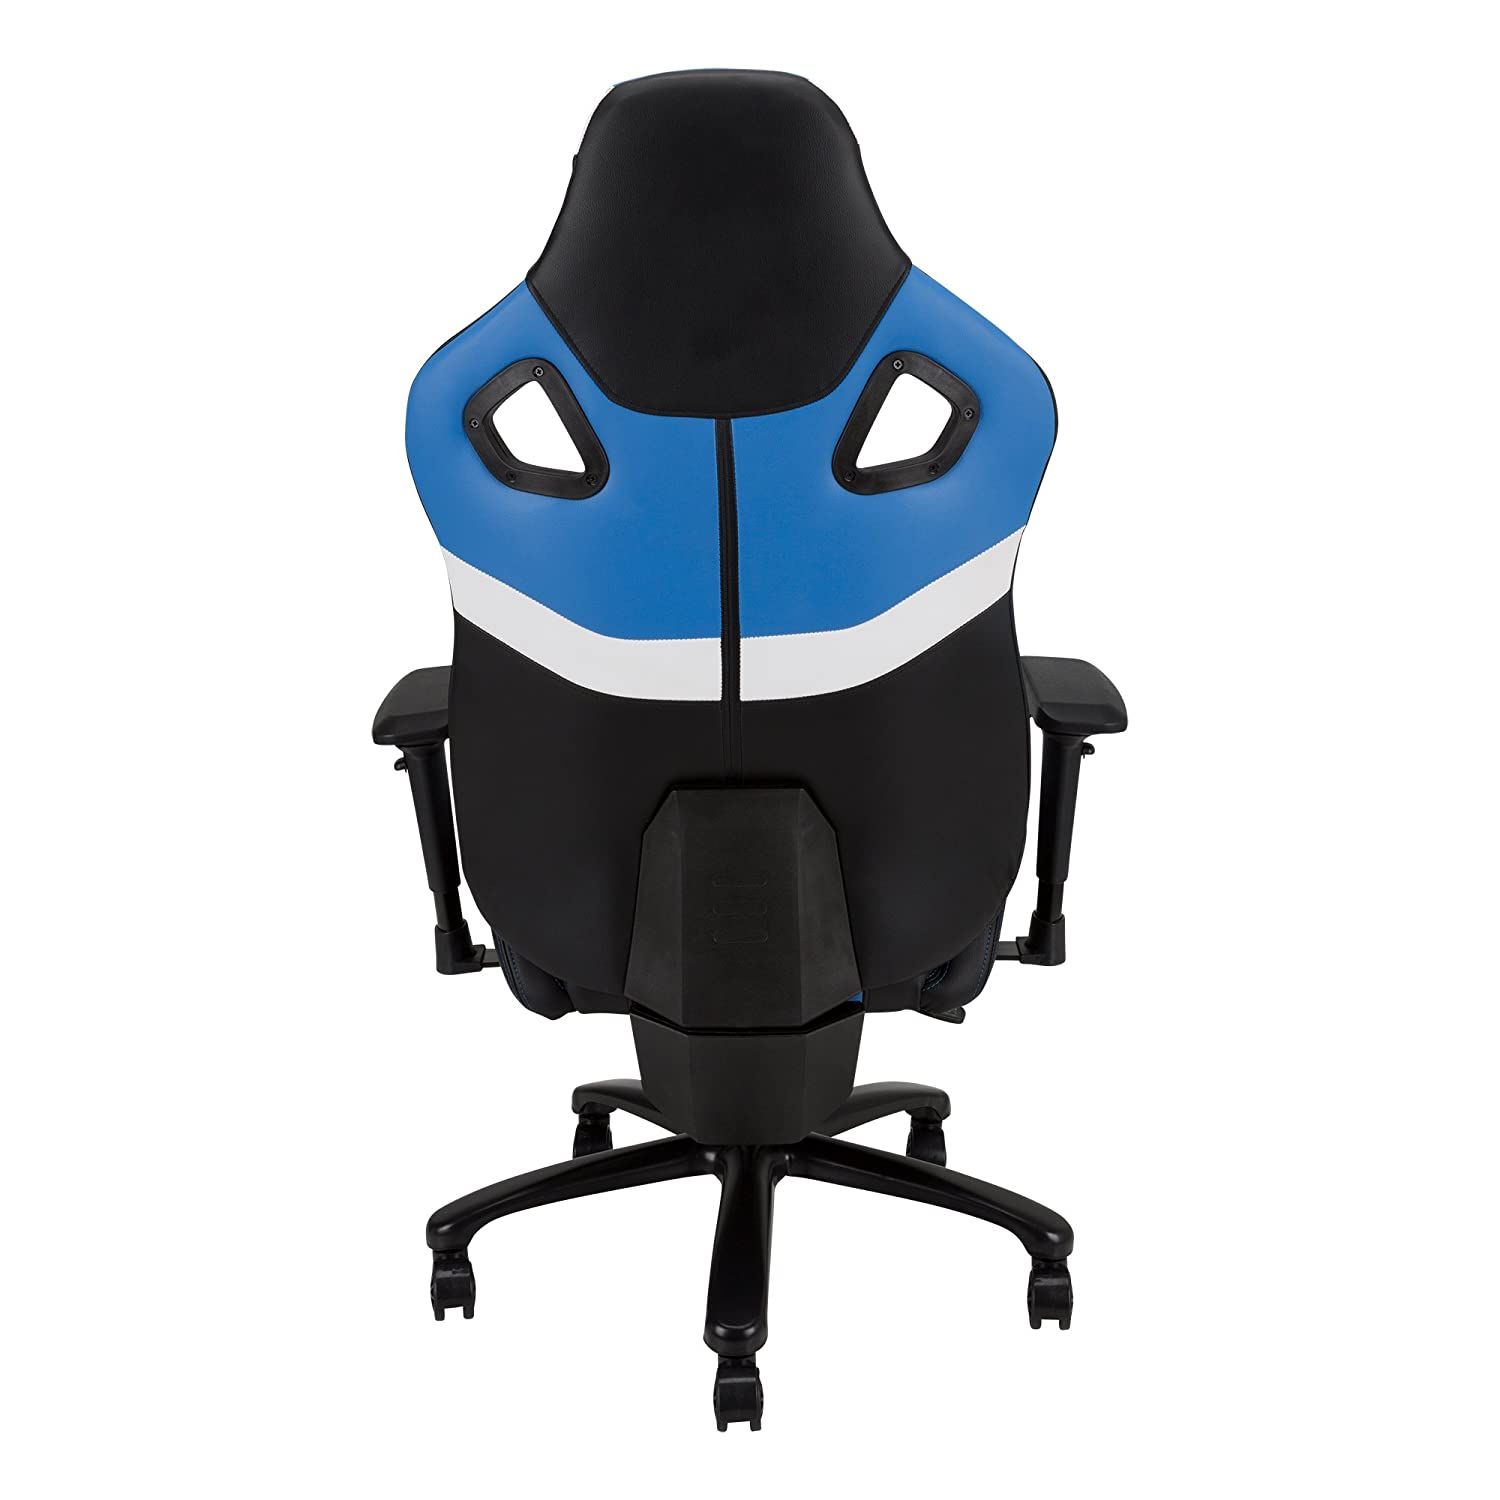 Amazon Galaxy XL Big and Tall Size Gaming Chair by SkyLab Performance Seating Blue Black White Industrial & Scientific